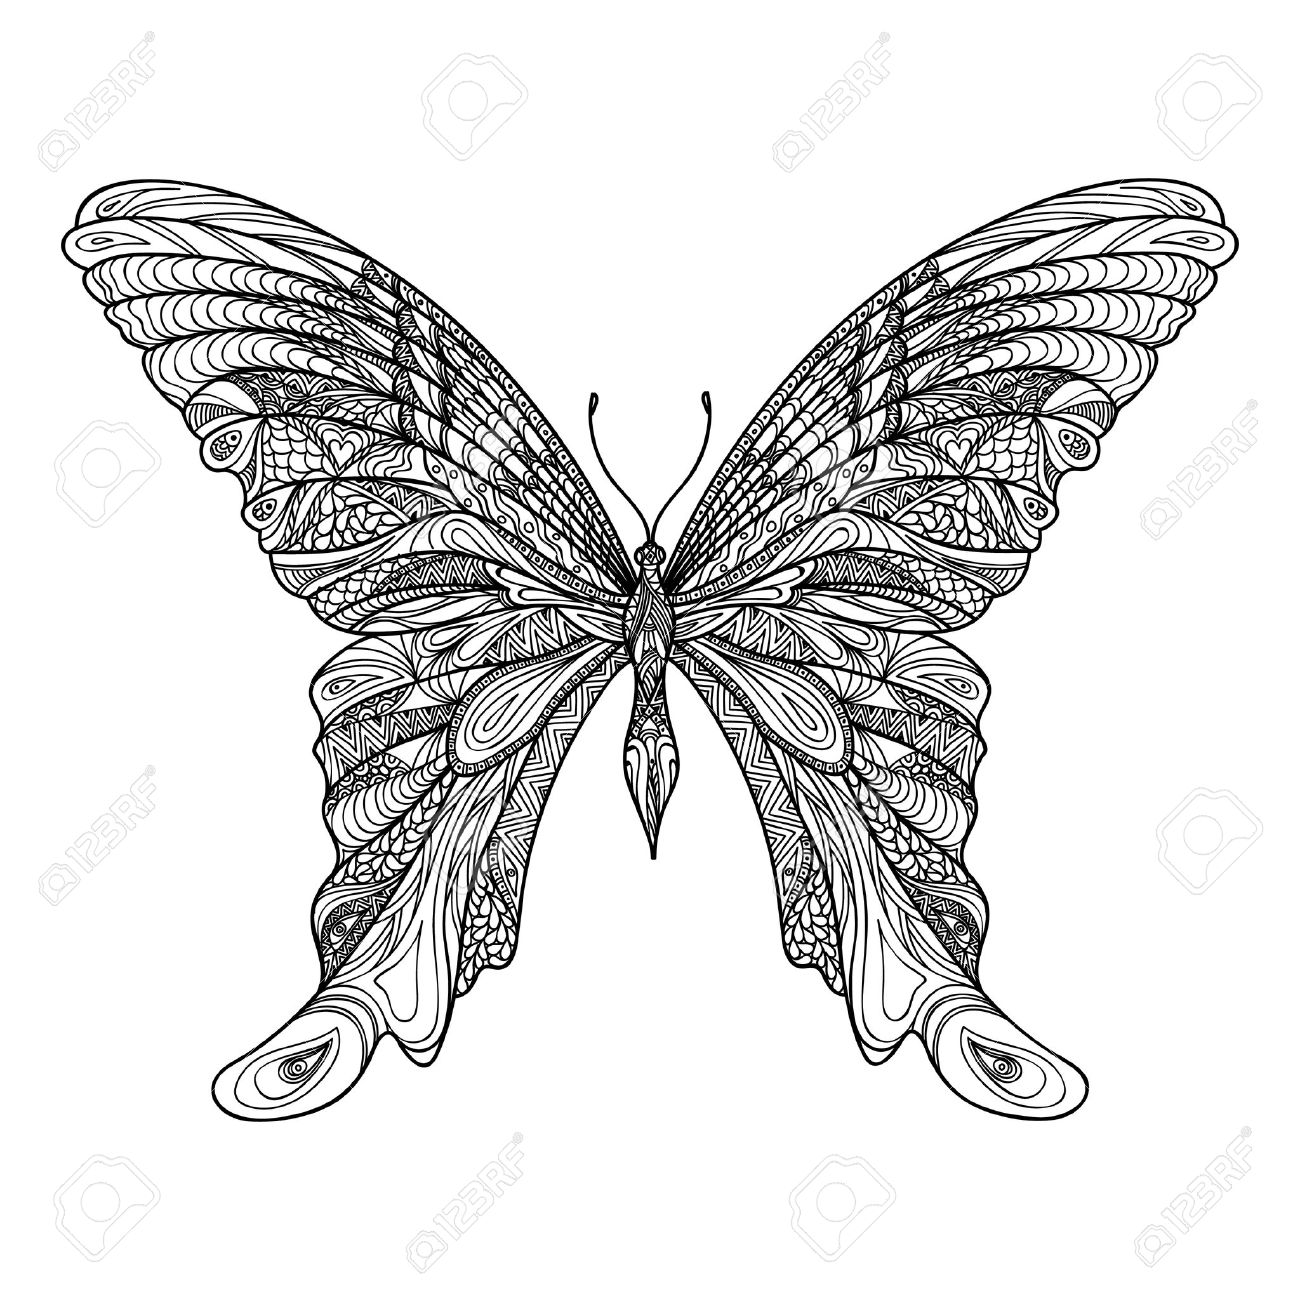 Butterfly isolated. Zentangle butterfly hand drawn sketch vector illustration. Decorative abstract doodle design element with pattern, suitable for a tattoo. Stock Vector - 48447958